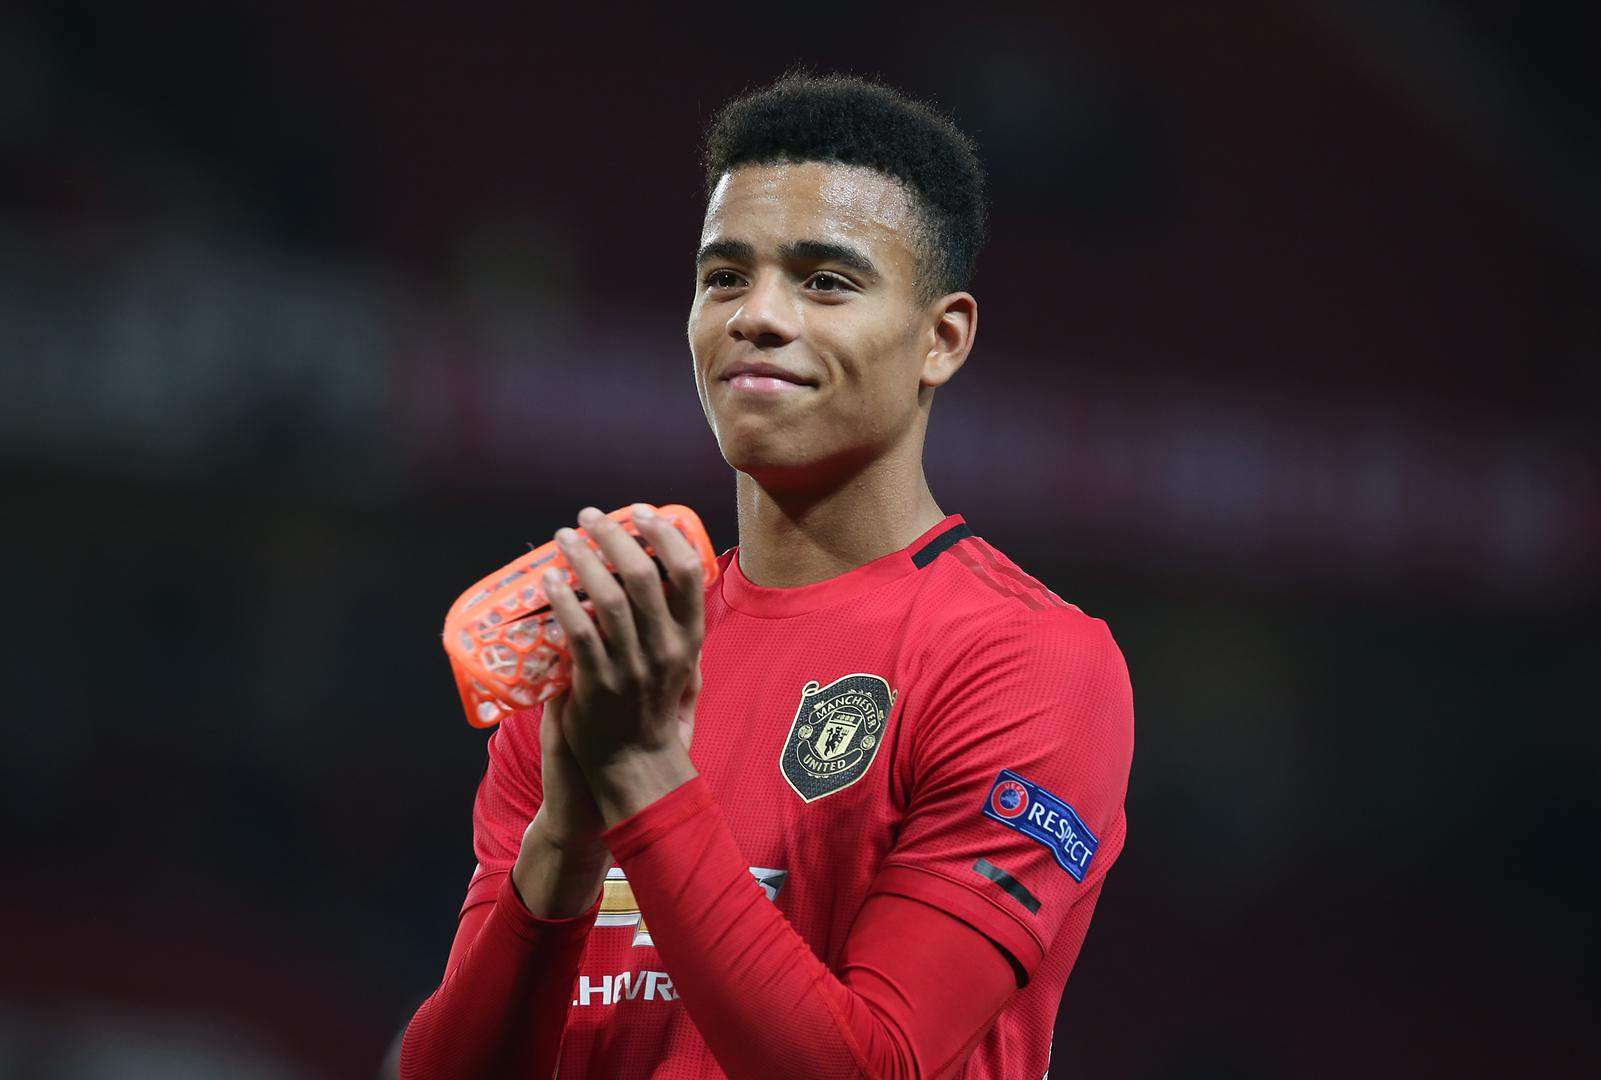 Mason Greenwood claps the fans after Manchester United beat Astana in the Europa League.